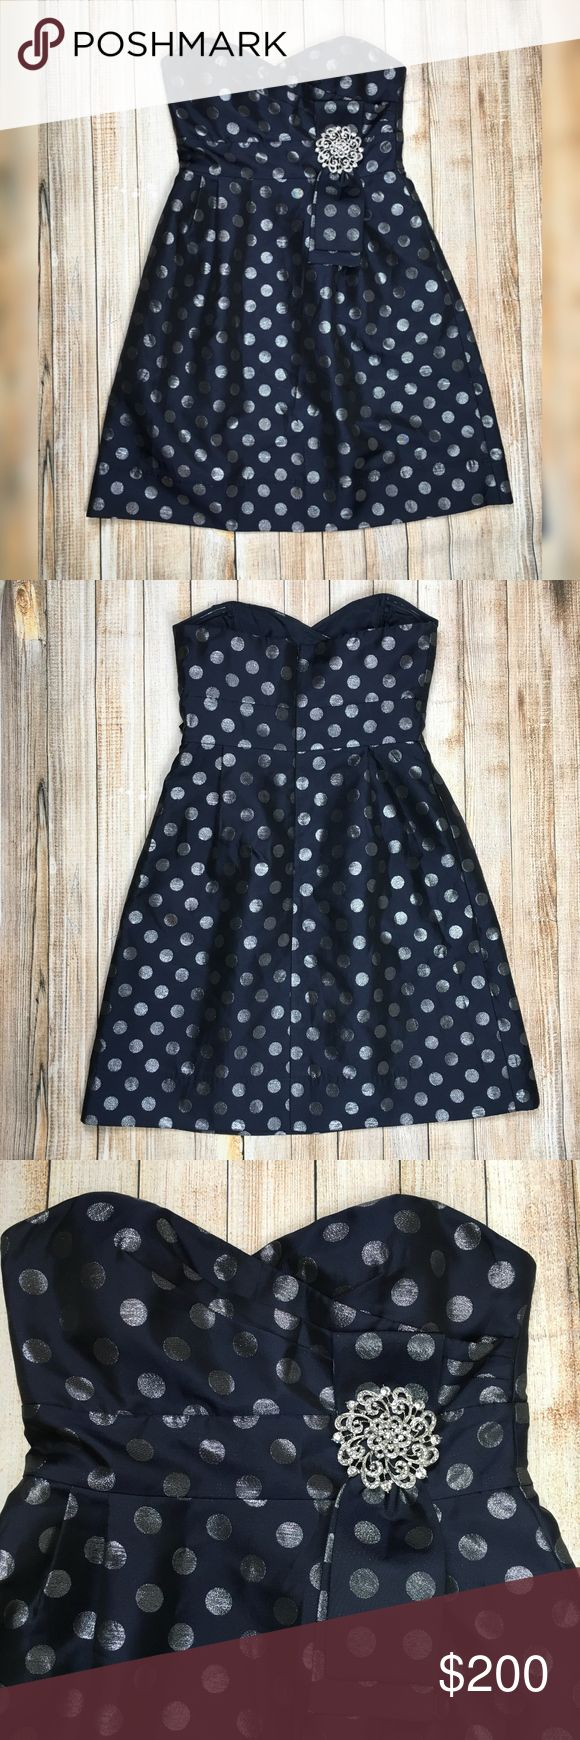 Eliza J polka dot party dress in navy and silver Eliza J polka dot fit and flare dress in navy and silver. Strapless sweetheart neckline with rhinestone pin embellishment, the silver polka dots shimmer just enough to grab your attention against the navy.   Like new condition, no flaws.   Approximate measurements provided in photos.   OFFERS ENCOURAGED!  Tags: military ball, homecoming, formal, fancy, pretty, girly, flirty, date night, wedding guest, bridesmaid, bow, navy blue, special…